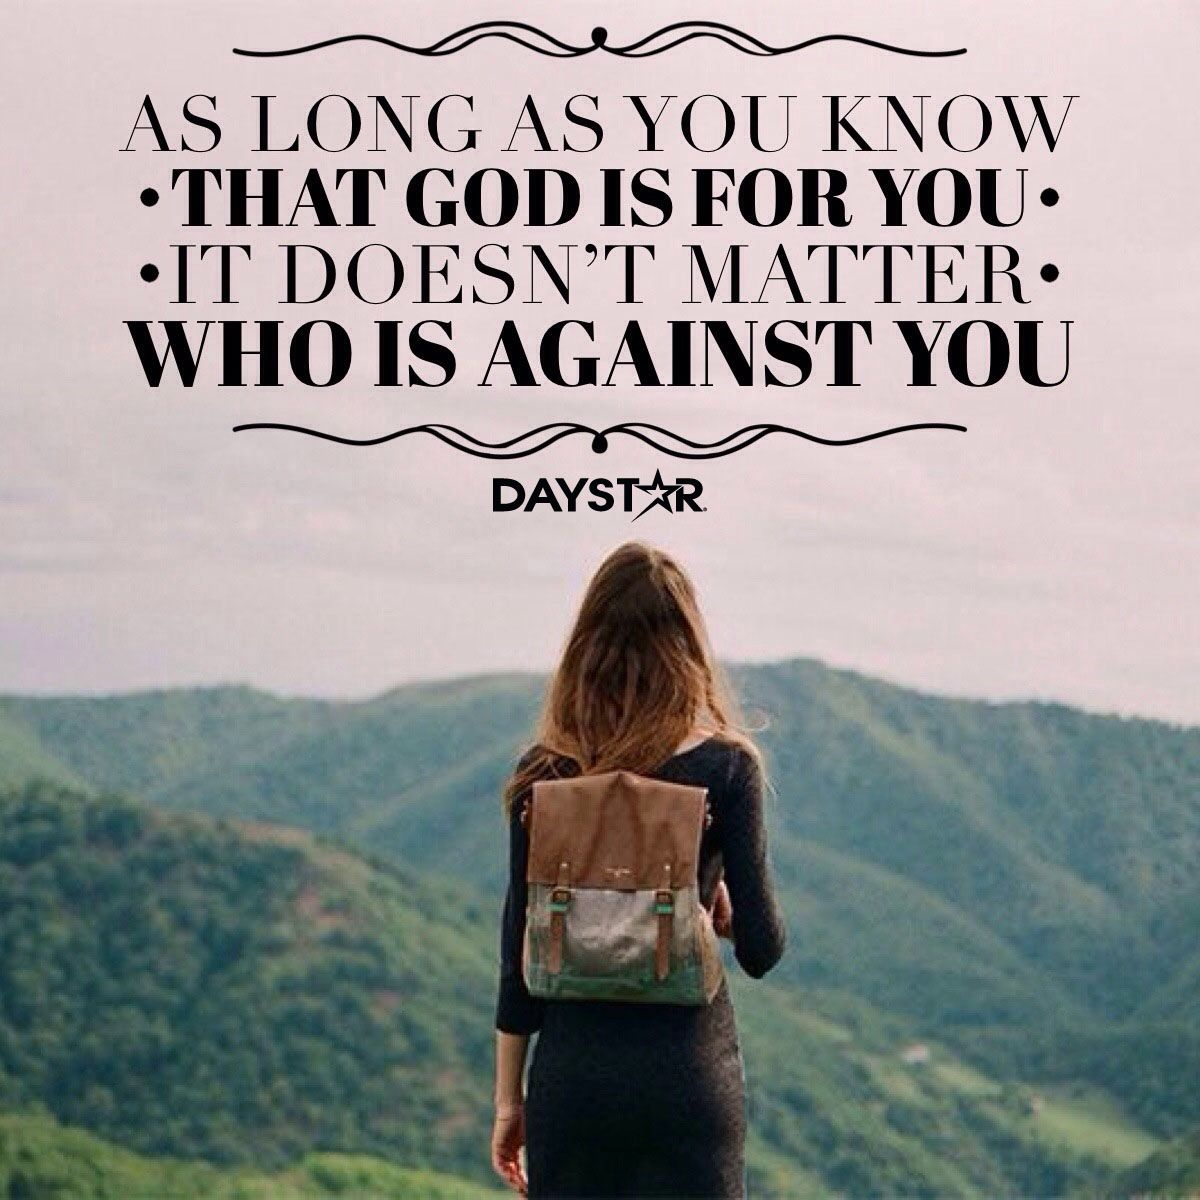 On Knowing God Inspirational Quotes: As Long As You Know That God Is For You, It Doesn't Matter